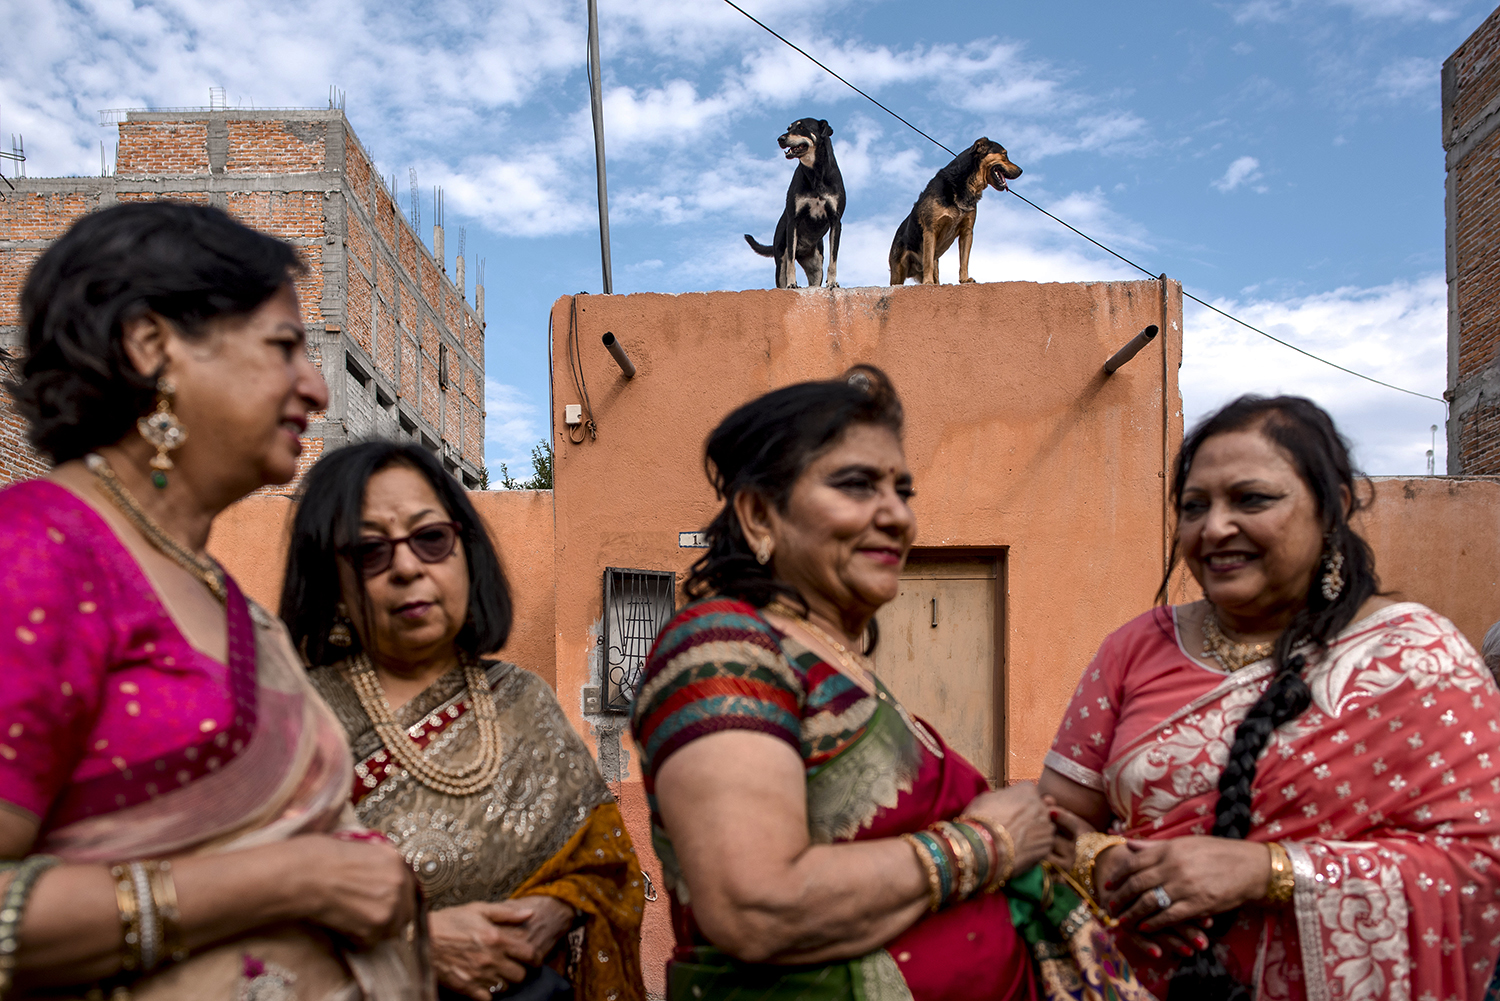 indian_wedding_san_miguel_de_allende_chio_garcia_photographer (25).jpg